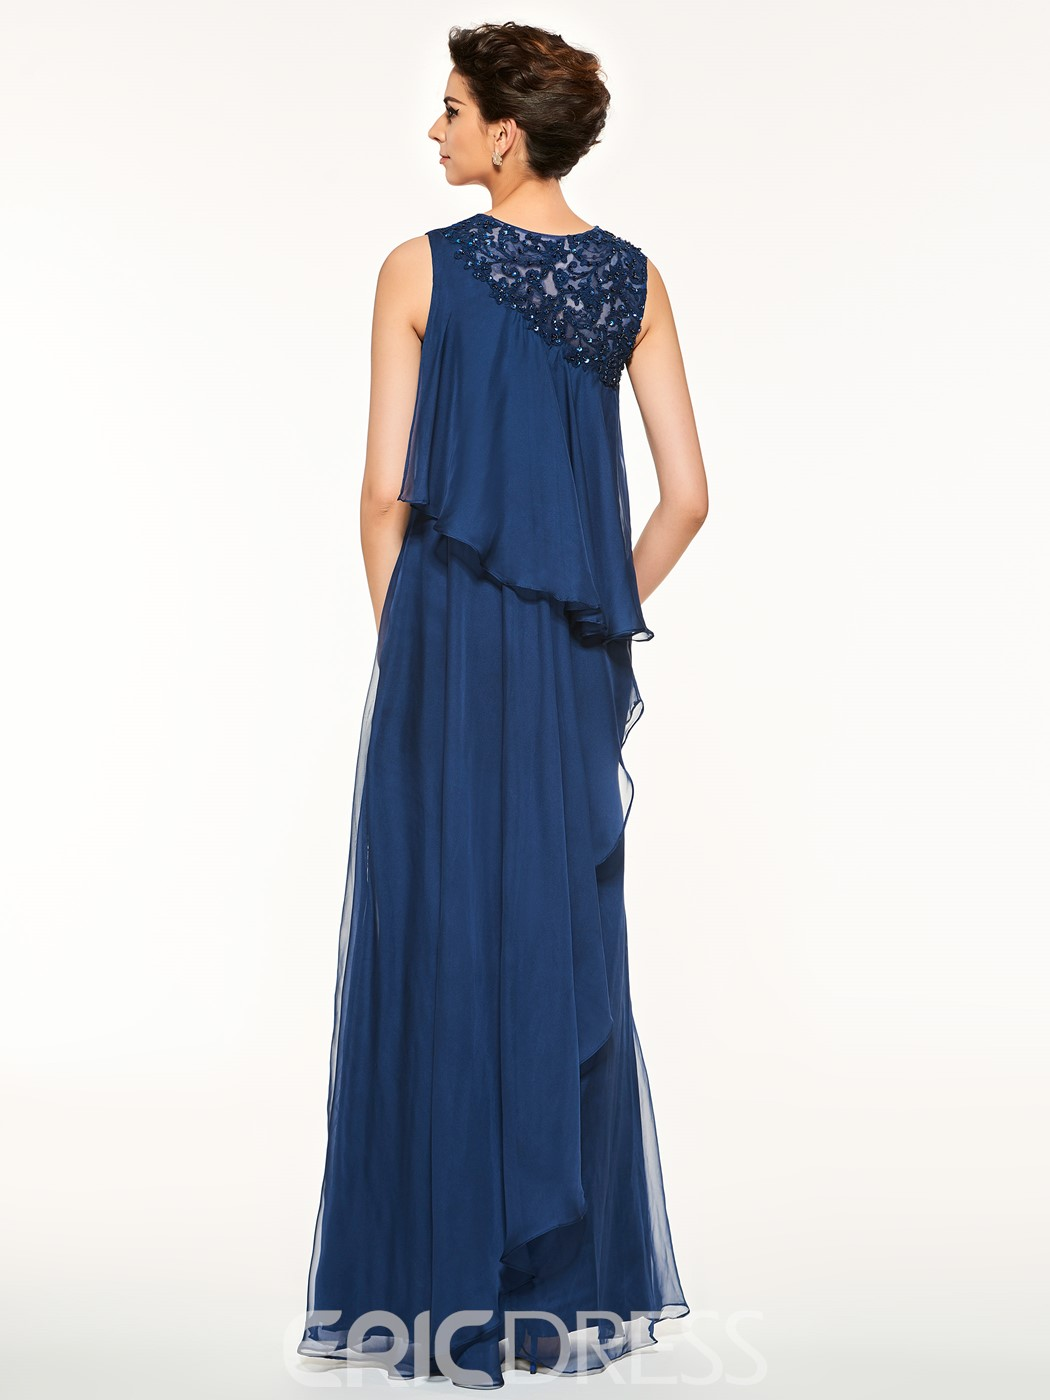 Ericdress Fancy Jewel Appliques A Line Mother Of The Bride Dress